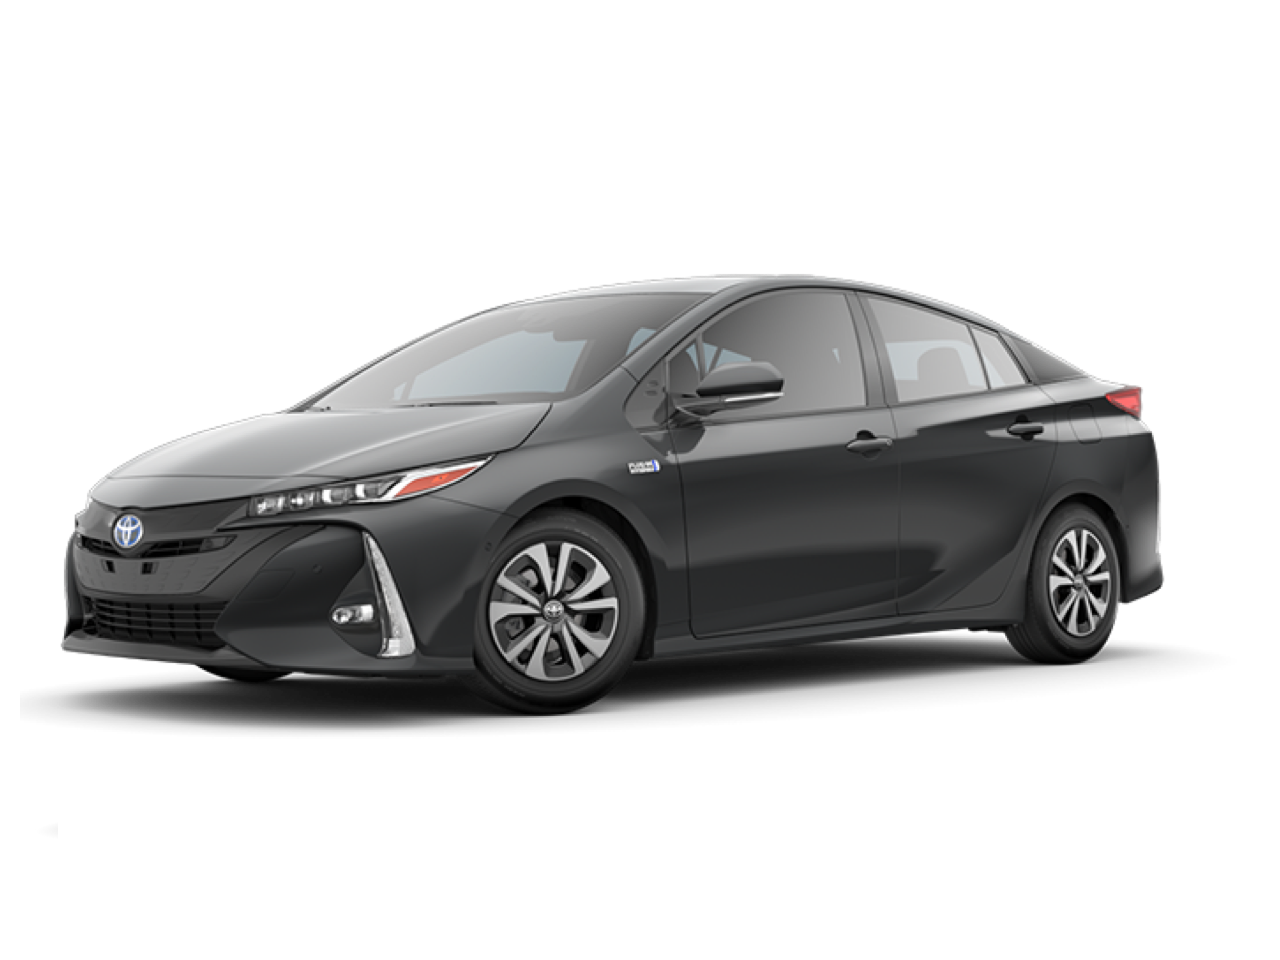 2017 toyota prius prime for sale near san diego toyota of el cajon. Black Bedroom Furniture Sets. Home Design Ideas